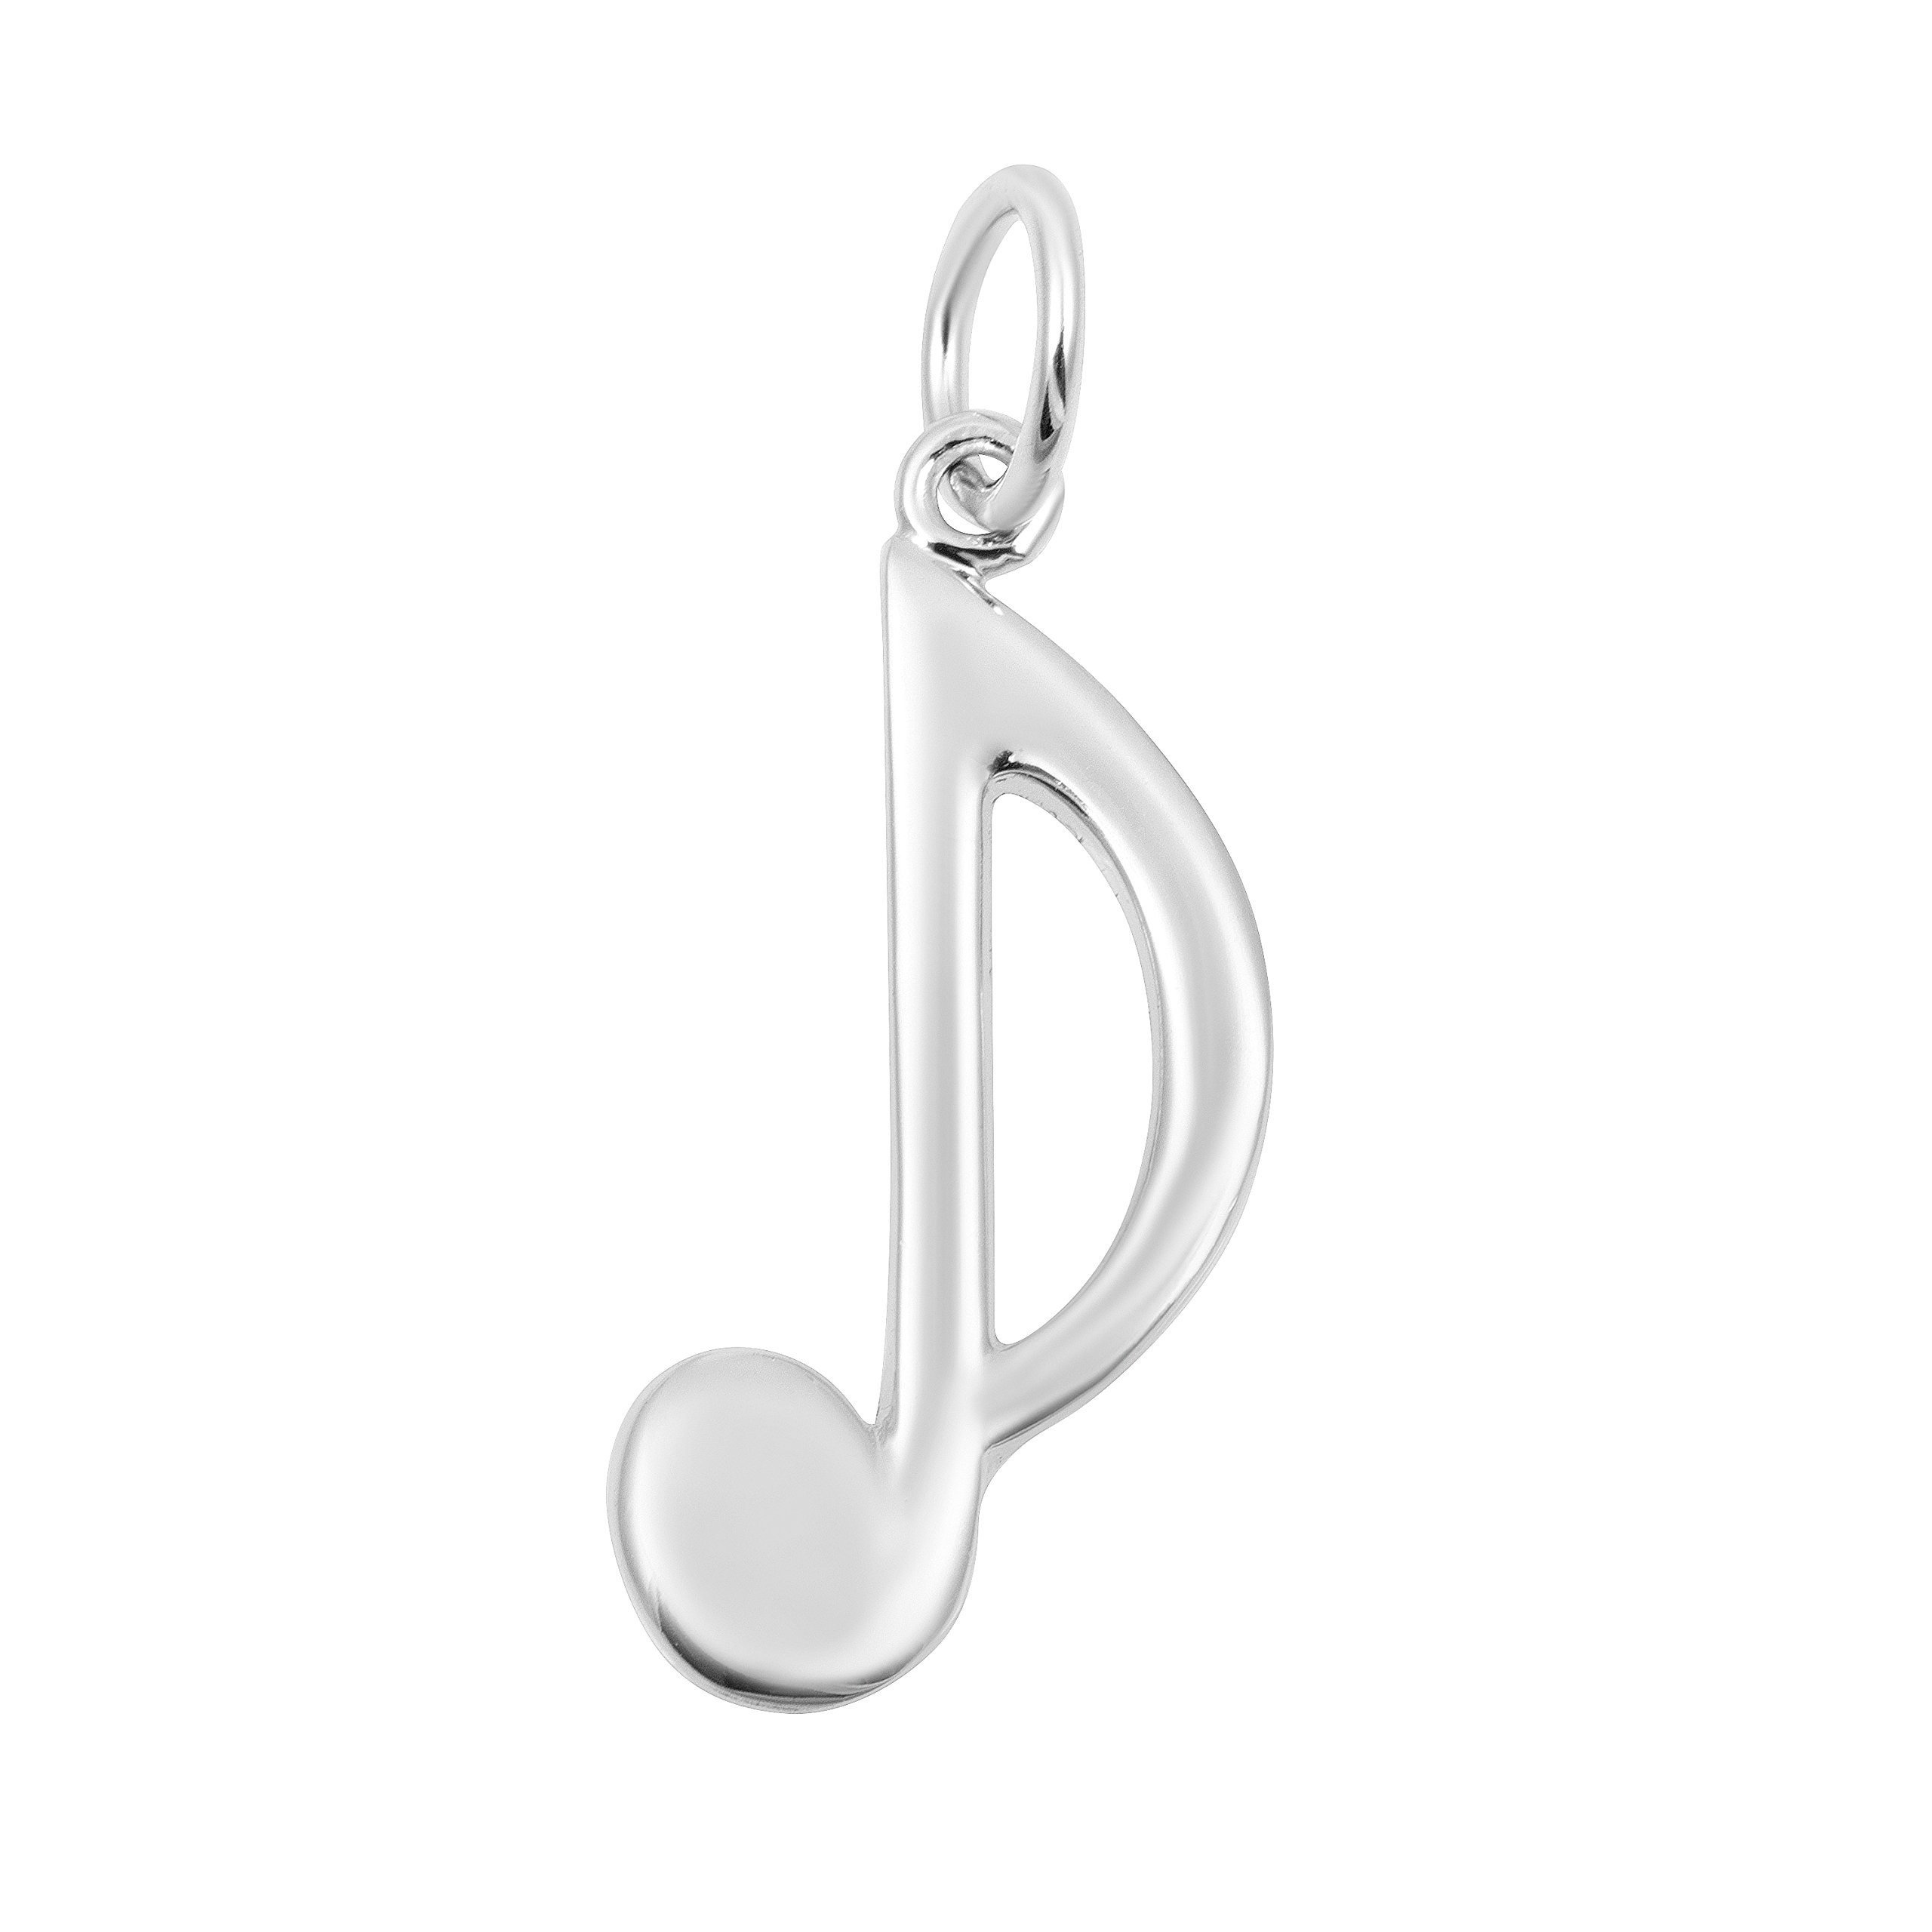 Necklace & Bracelet Charms – Music Themed Sterling Silver Fine Jewelry by Silver on the Rocks